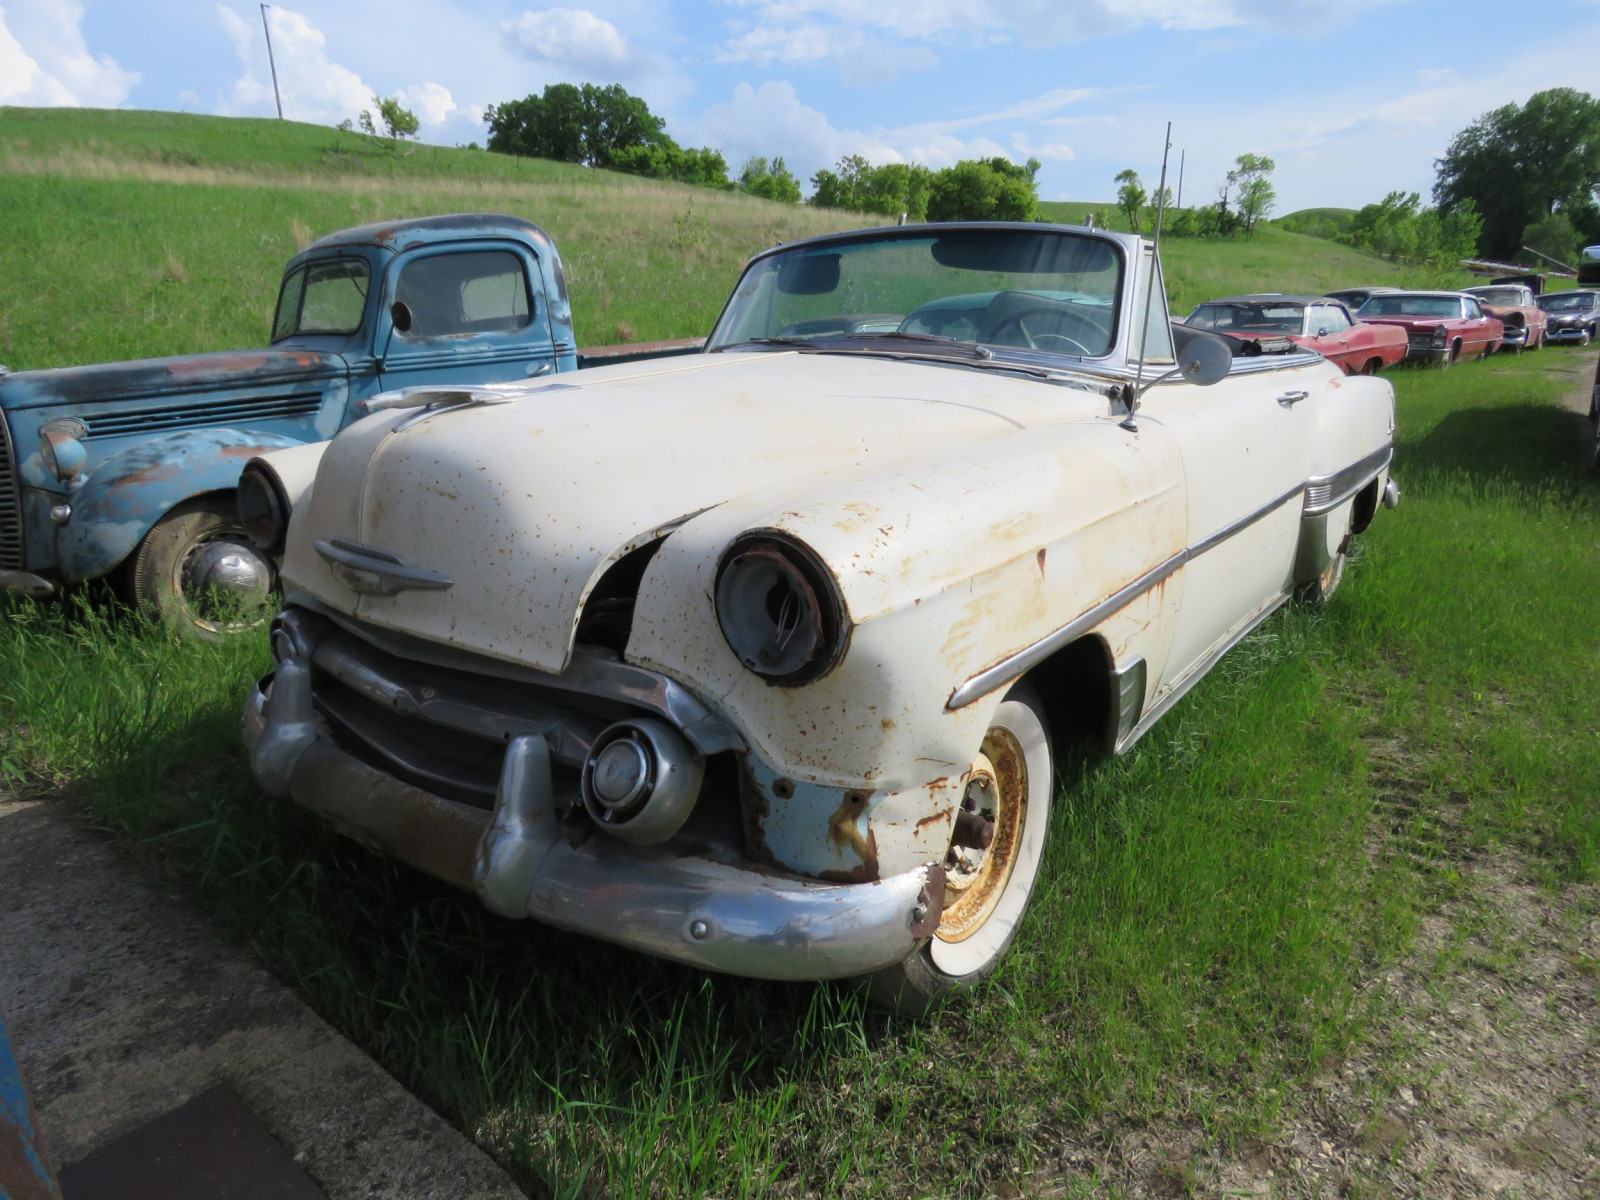 1953 Chevrolet Convertible for Restore - Image 3